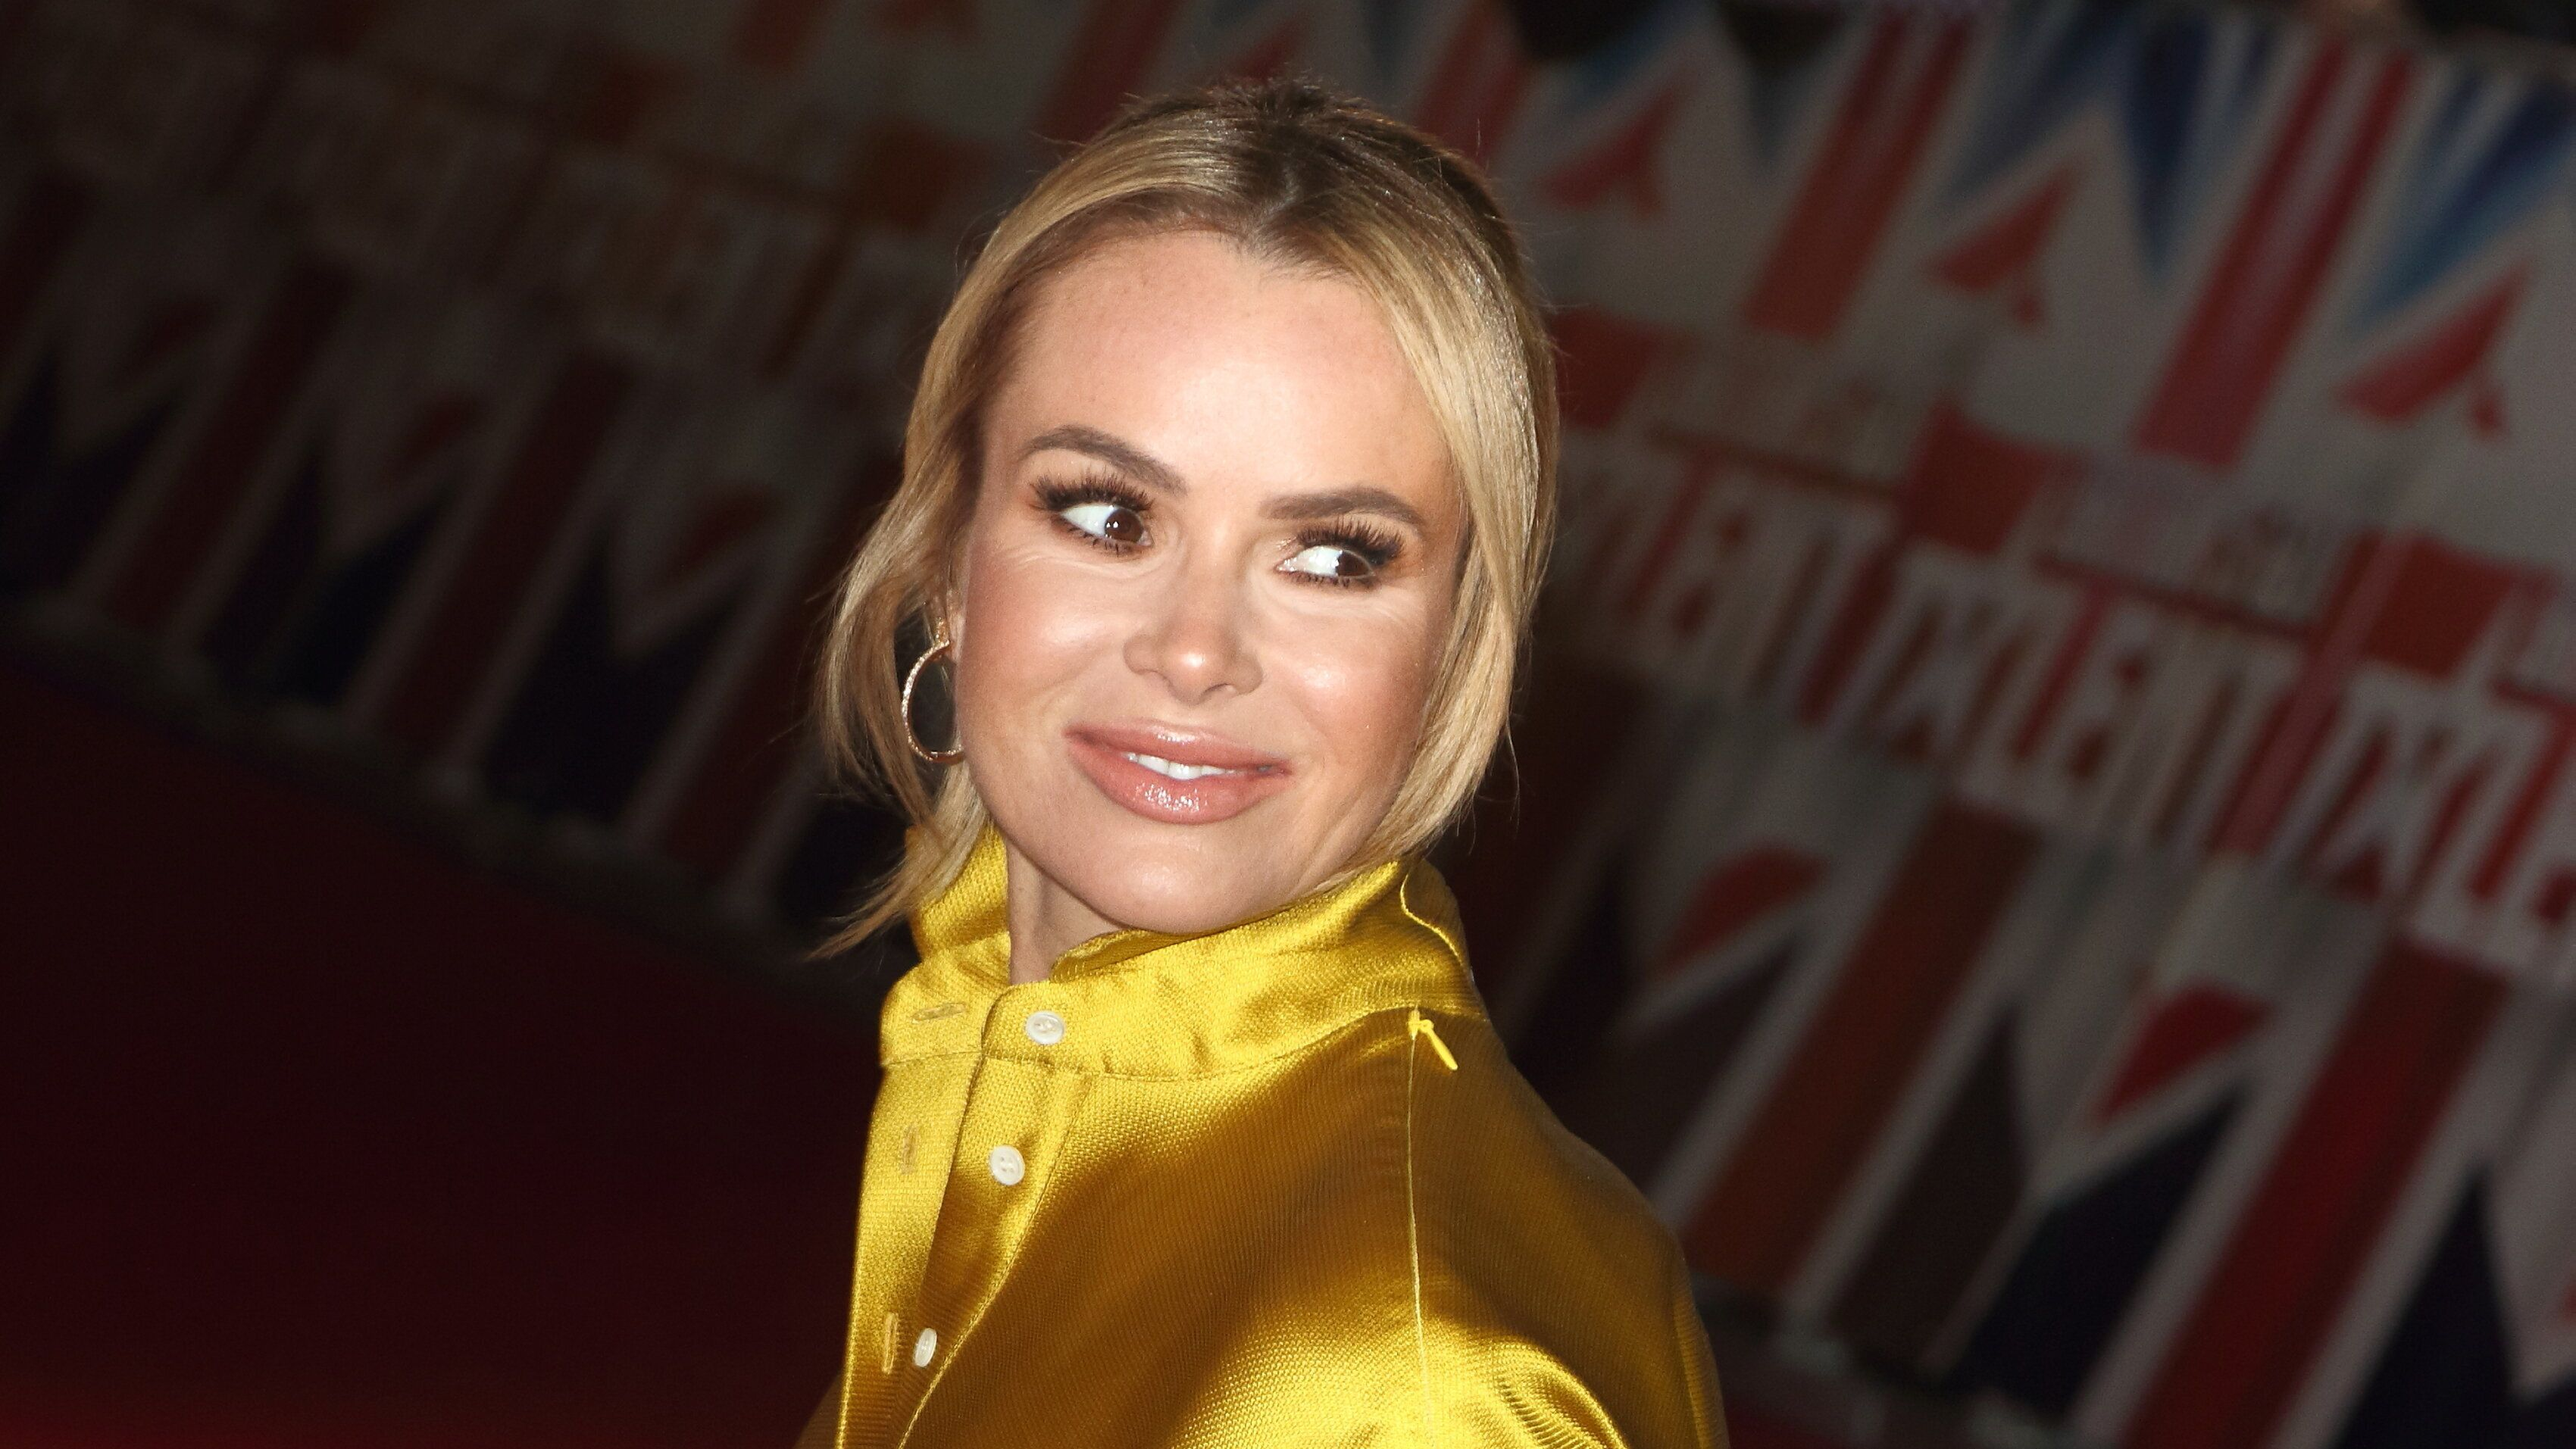 Judge Amanda Holden seen at the London Palladium for the Auditions of Britain's Got Talent TV Show - Series 13. (Photo by Keith Mayhew/SOPA Images/LightRocket via Getty Images)